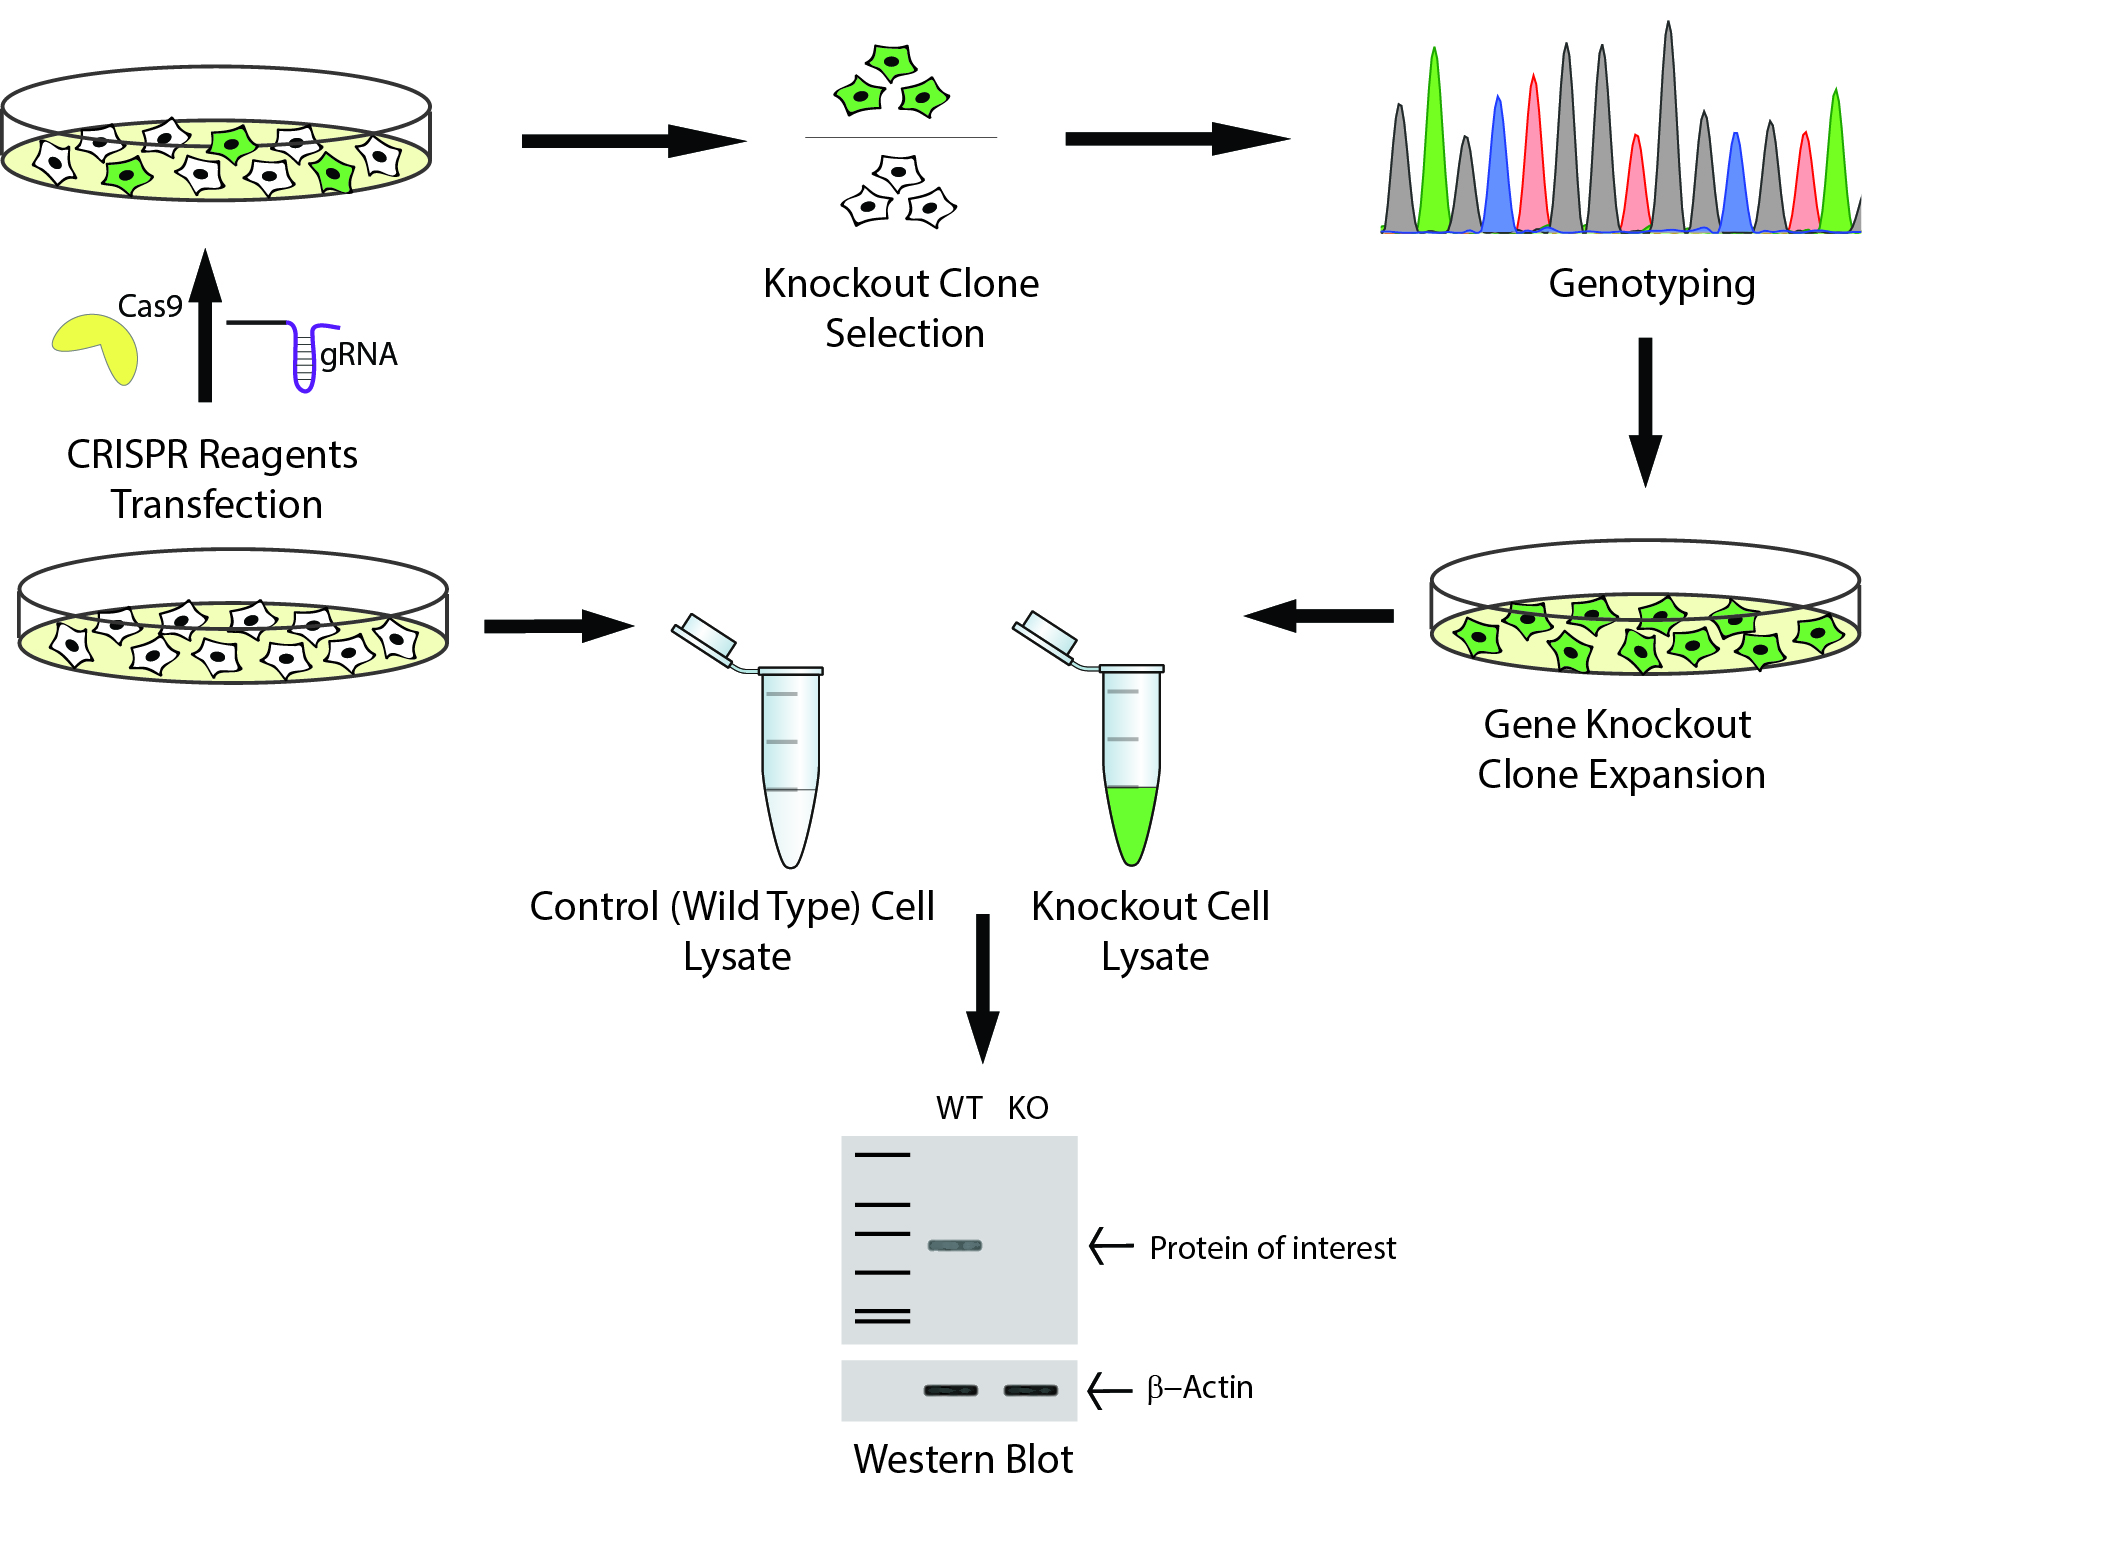 Cell Line Diagram Trusted Wiring Diagrams Fuel Cells Standard Antibody Validation Using Gene Knockout Lines Applied Stemcell Rh Appliedstemcell Com